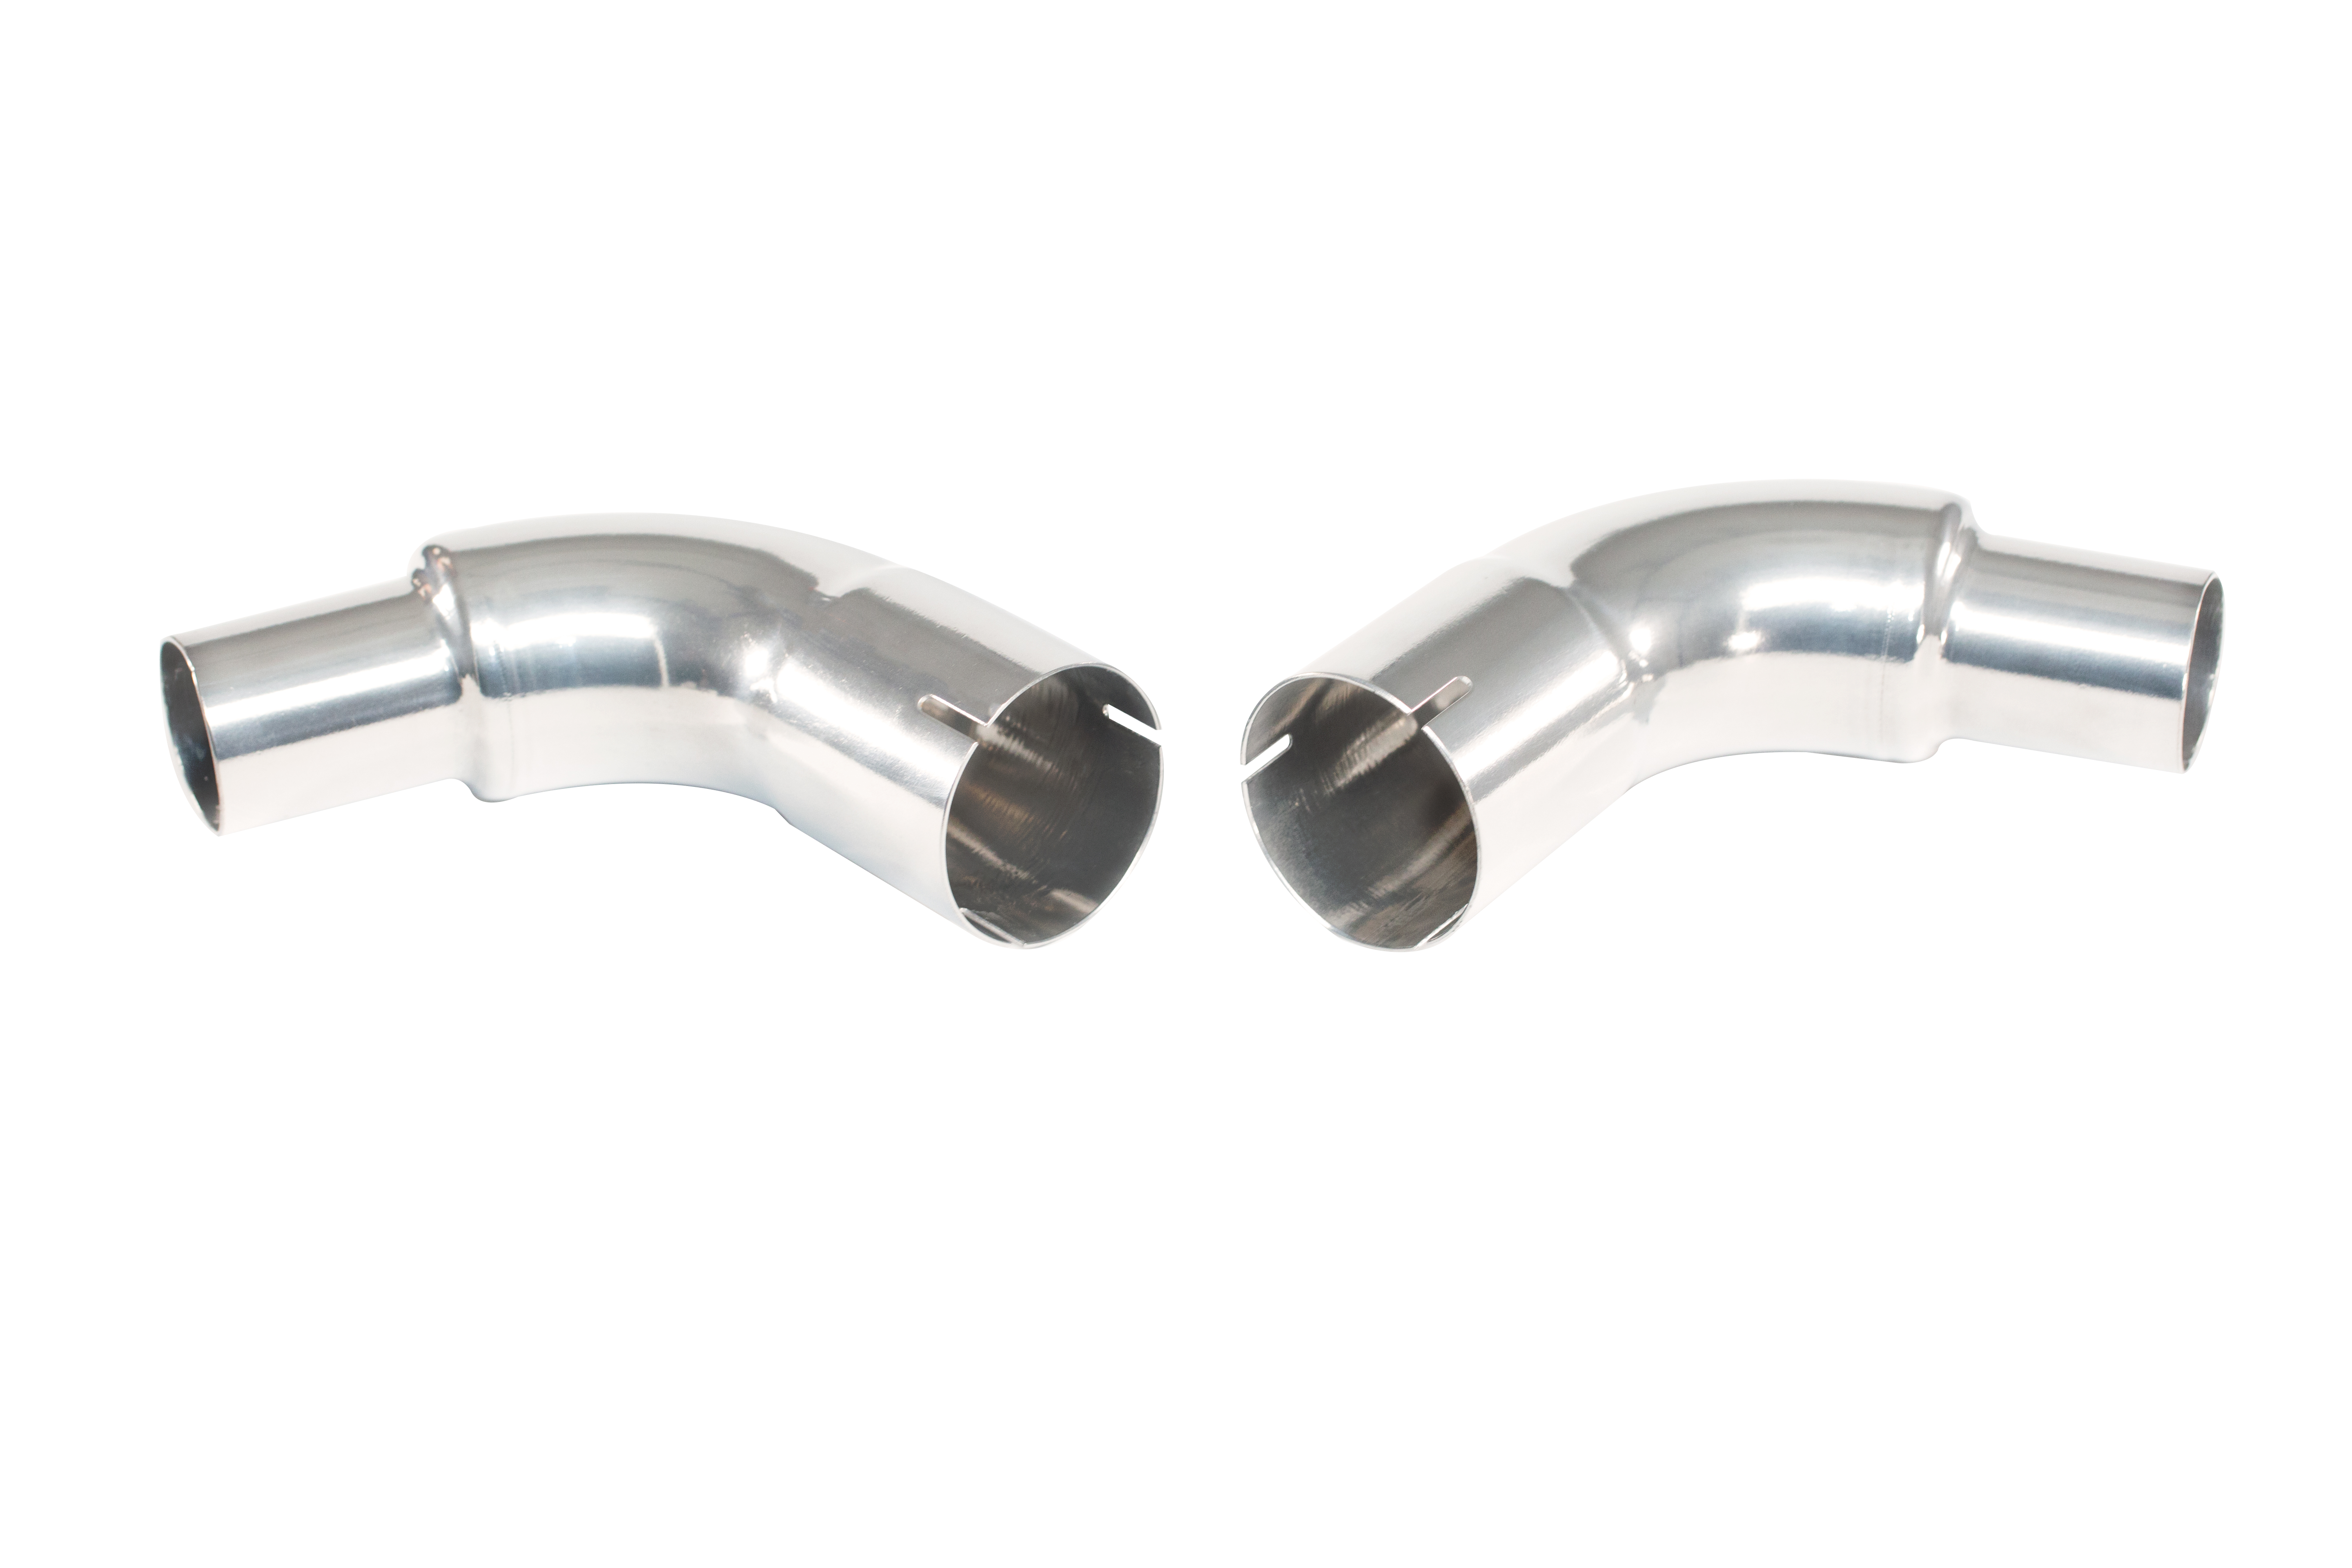 2015-2017 Ford Mustang GT 5 0L 4V Kooks Headers with Jet Hot Classic Polish  Coating 000002